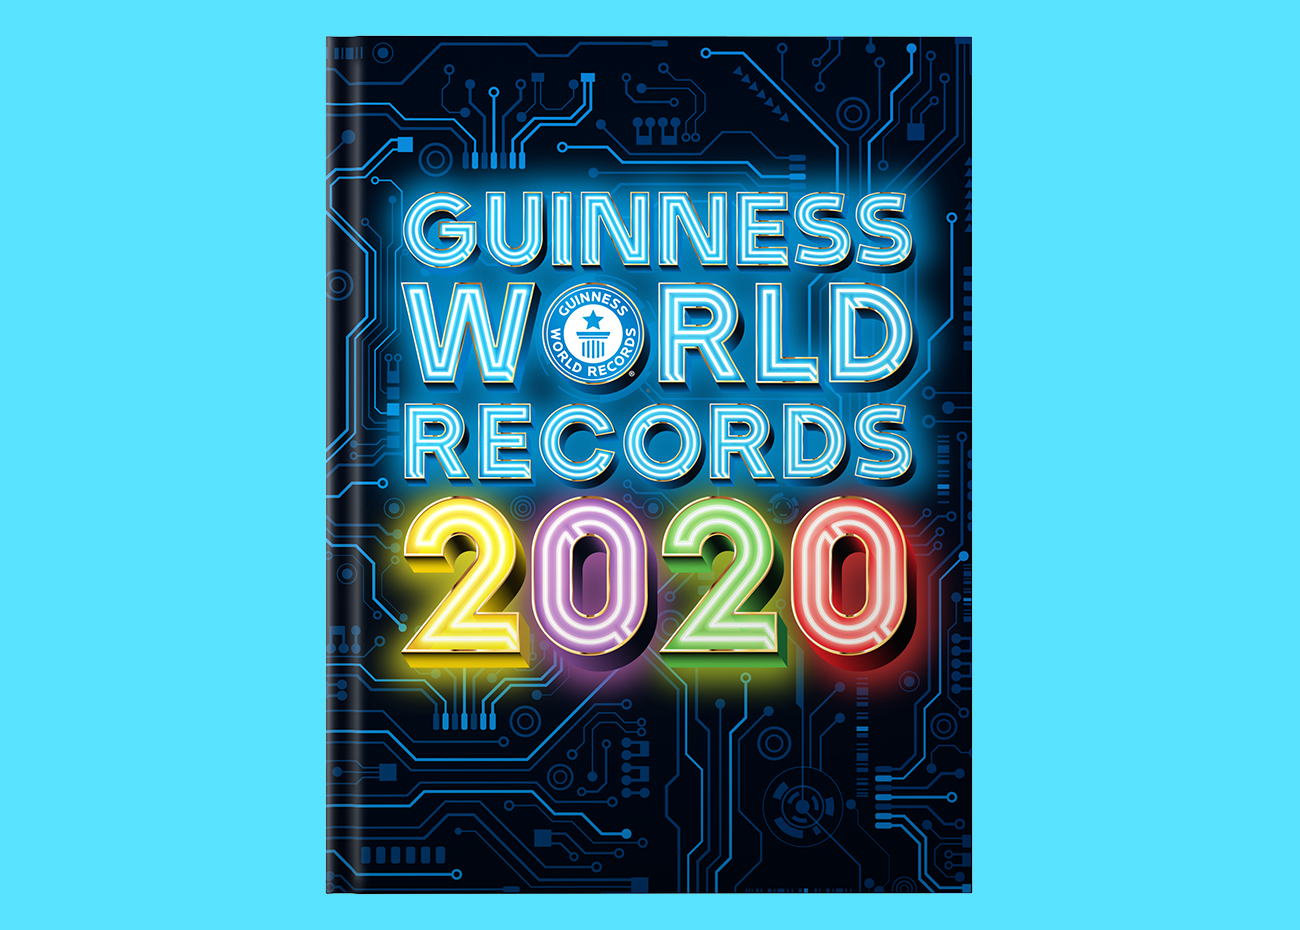 Guinness World Records 2020 List.Unbelievable Food Feats In The Guinness World Records 2020